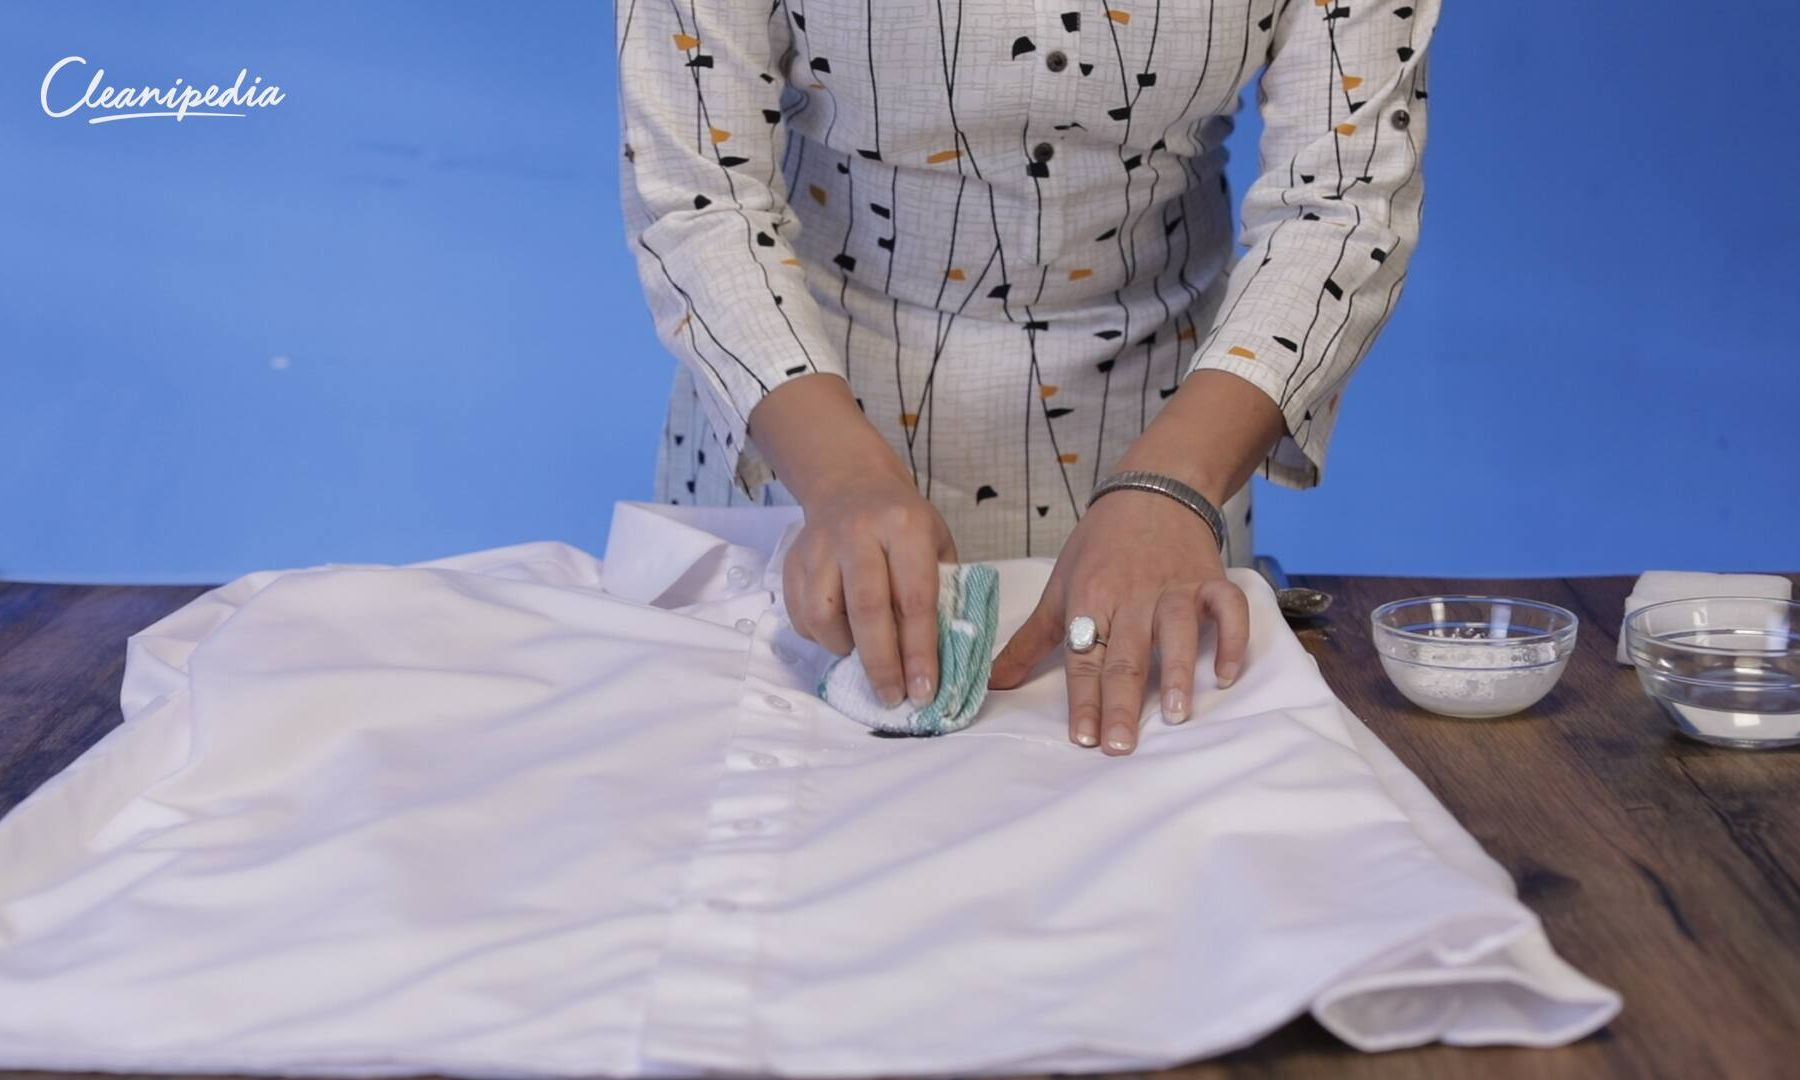 Dark, dirty marker stains on your clothes worrying you? Breathe easy with these simple steps to remove those bad marker stains!